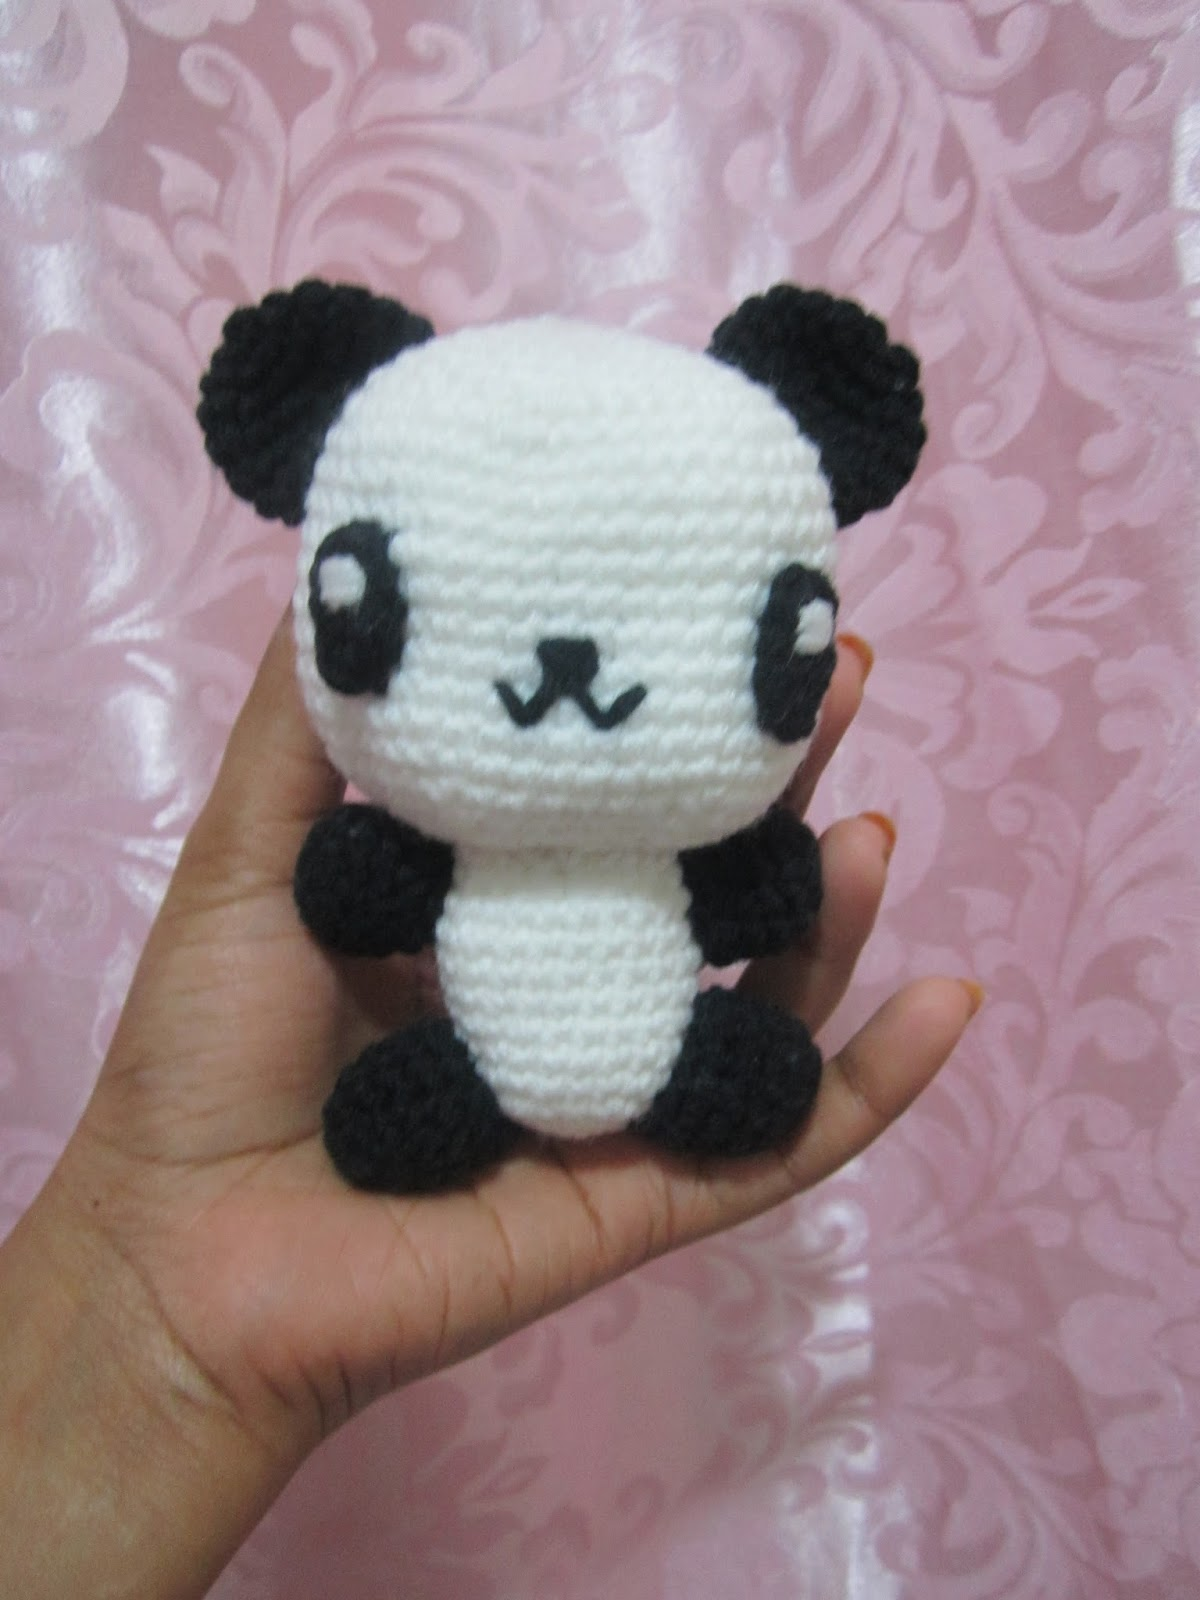 Amigurumi Panda Ohje : A little love everyday!: Amigurumi Panda